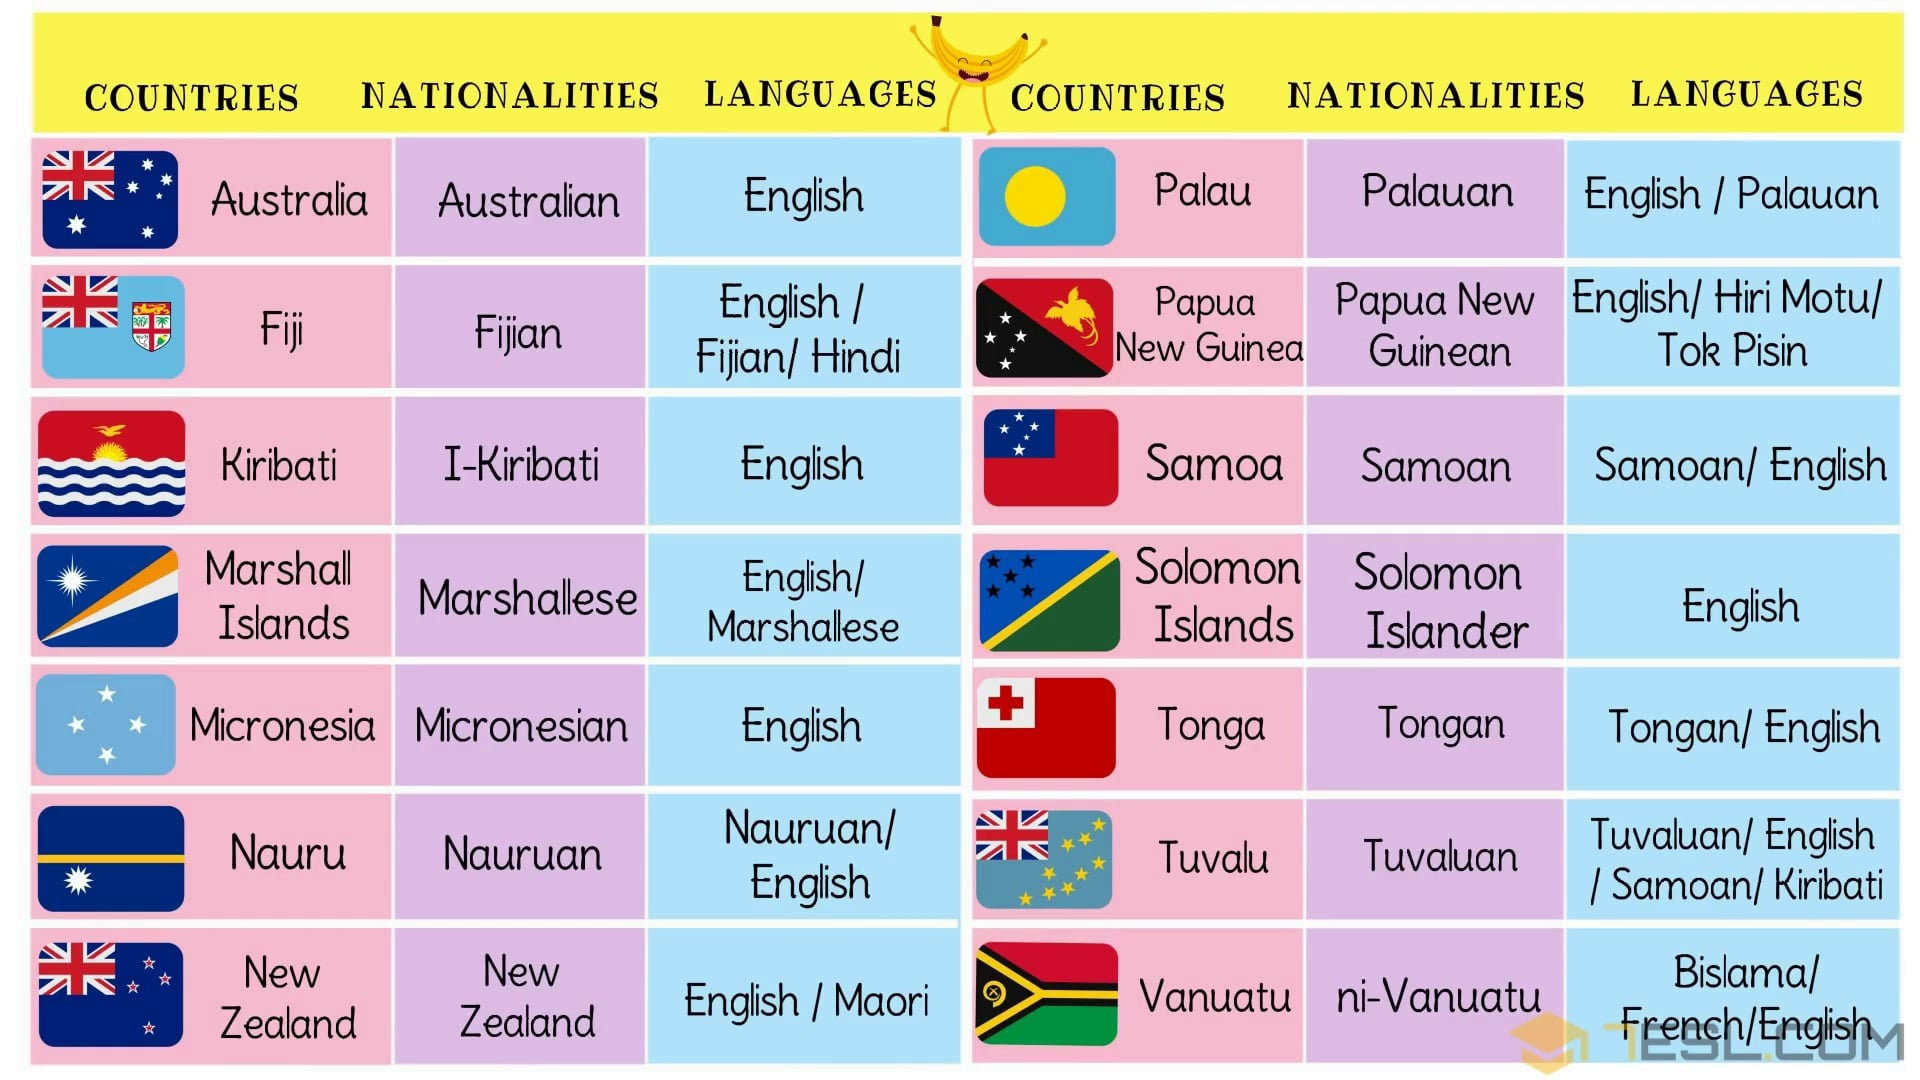 Oceania Countries With Languages Nationalities Flags 7 E S L